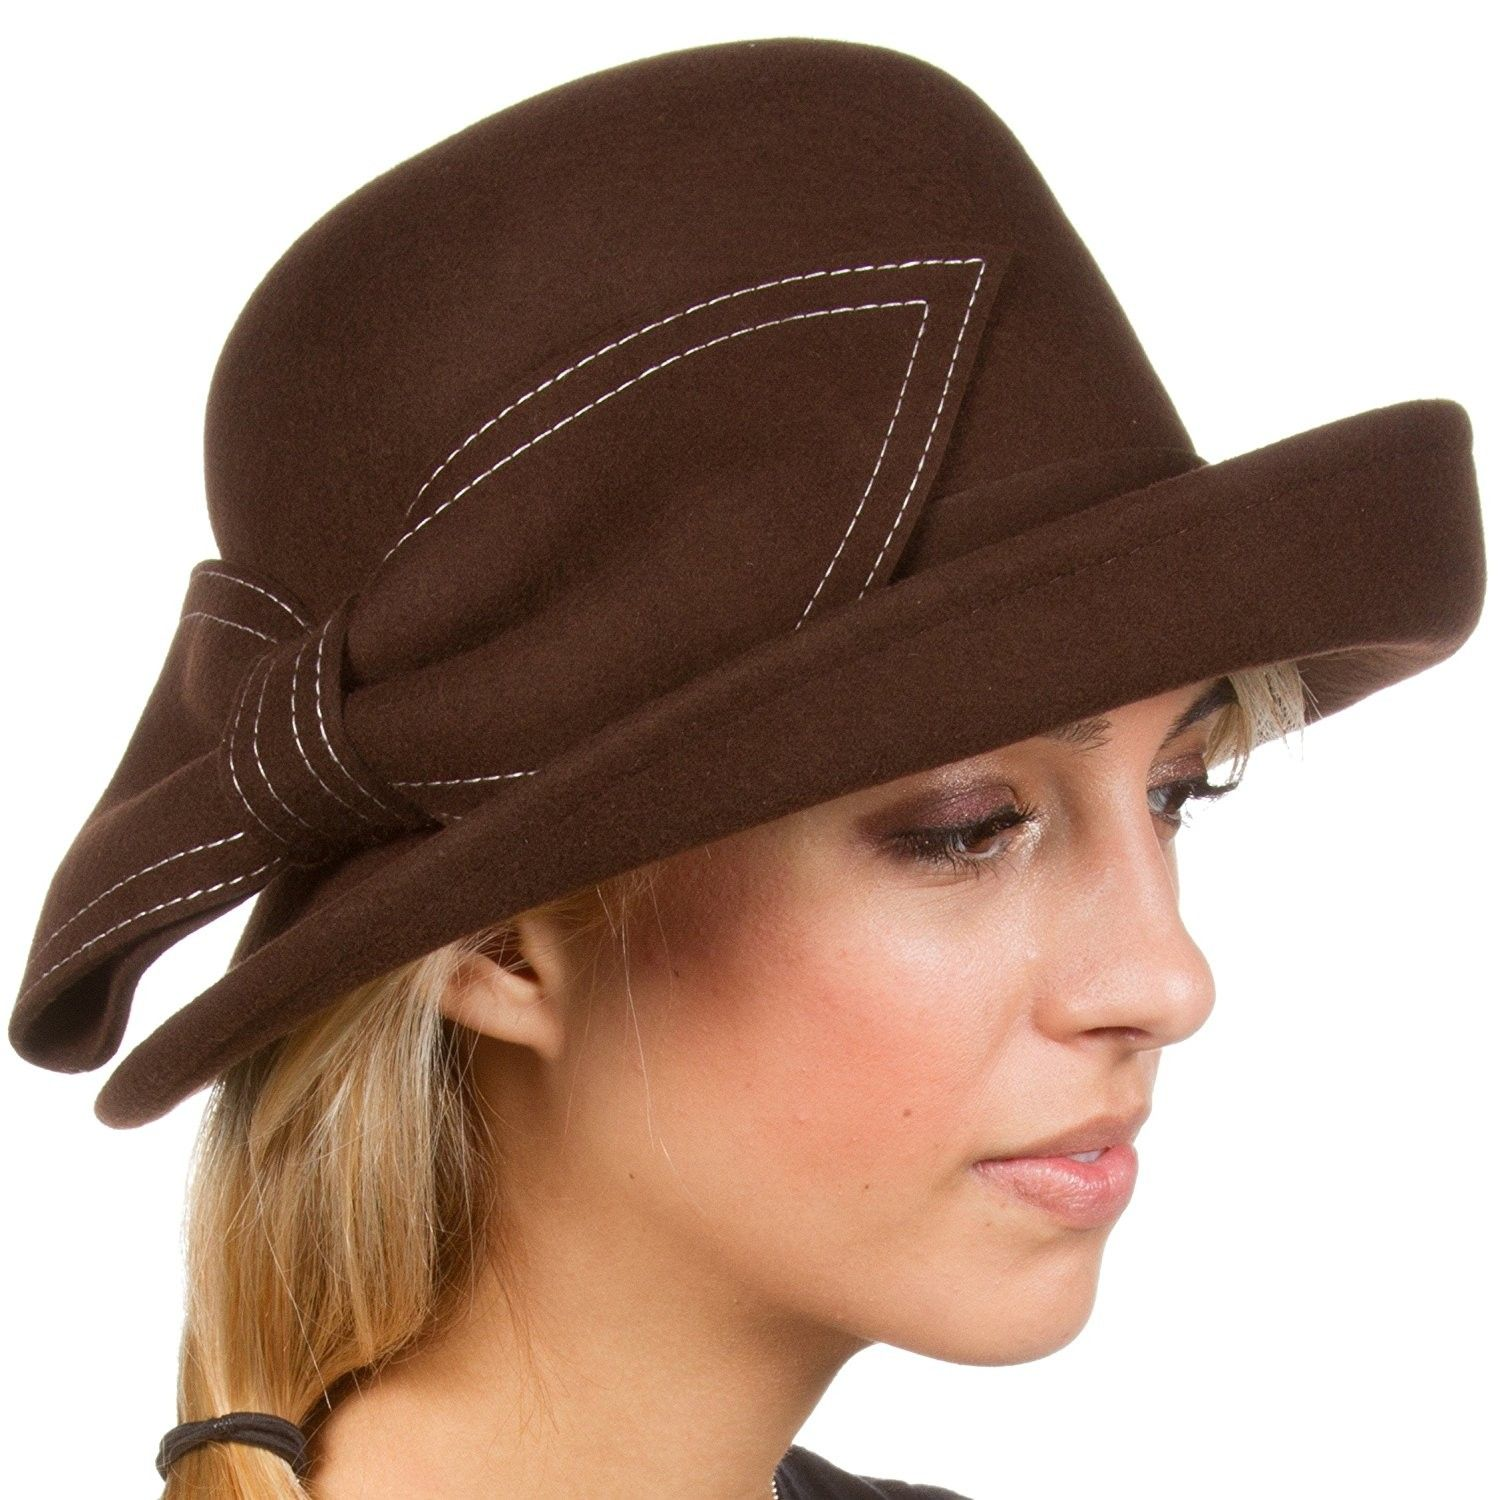 Bobbi Vintage Style Wool Cloche Bell Derby Hat - Chocolate - CF11HNV3KNZ -  Hats   Caps 797cabd48d96